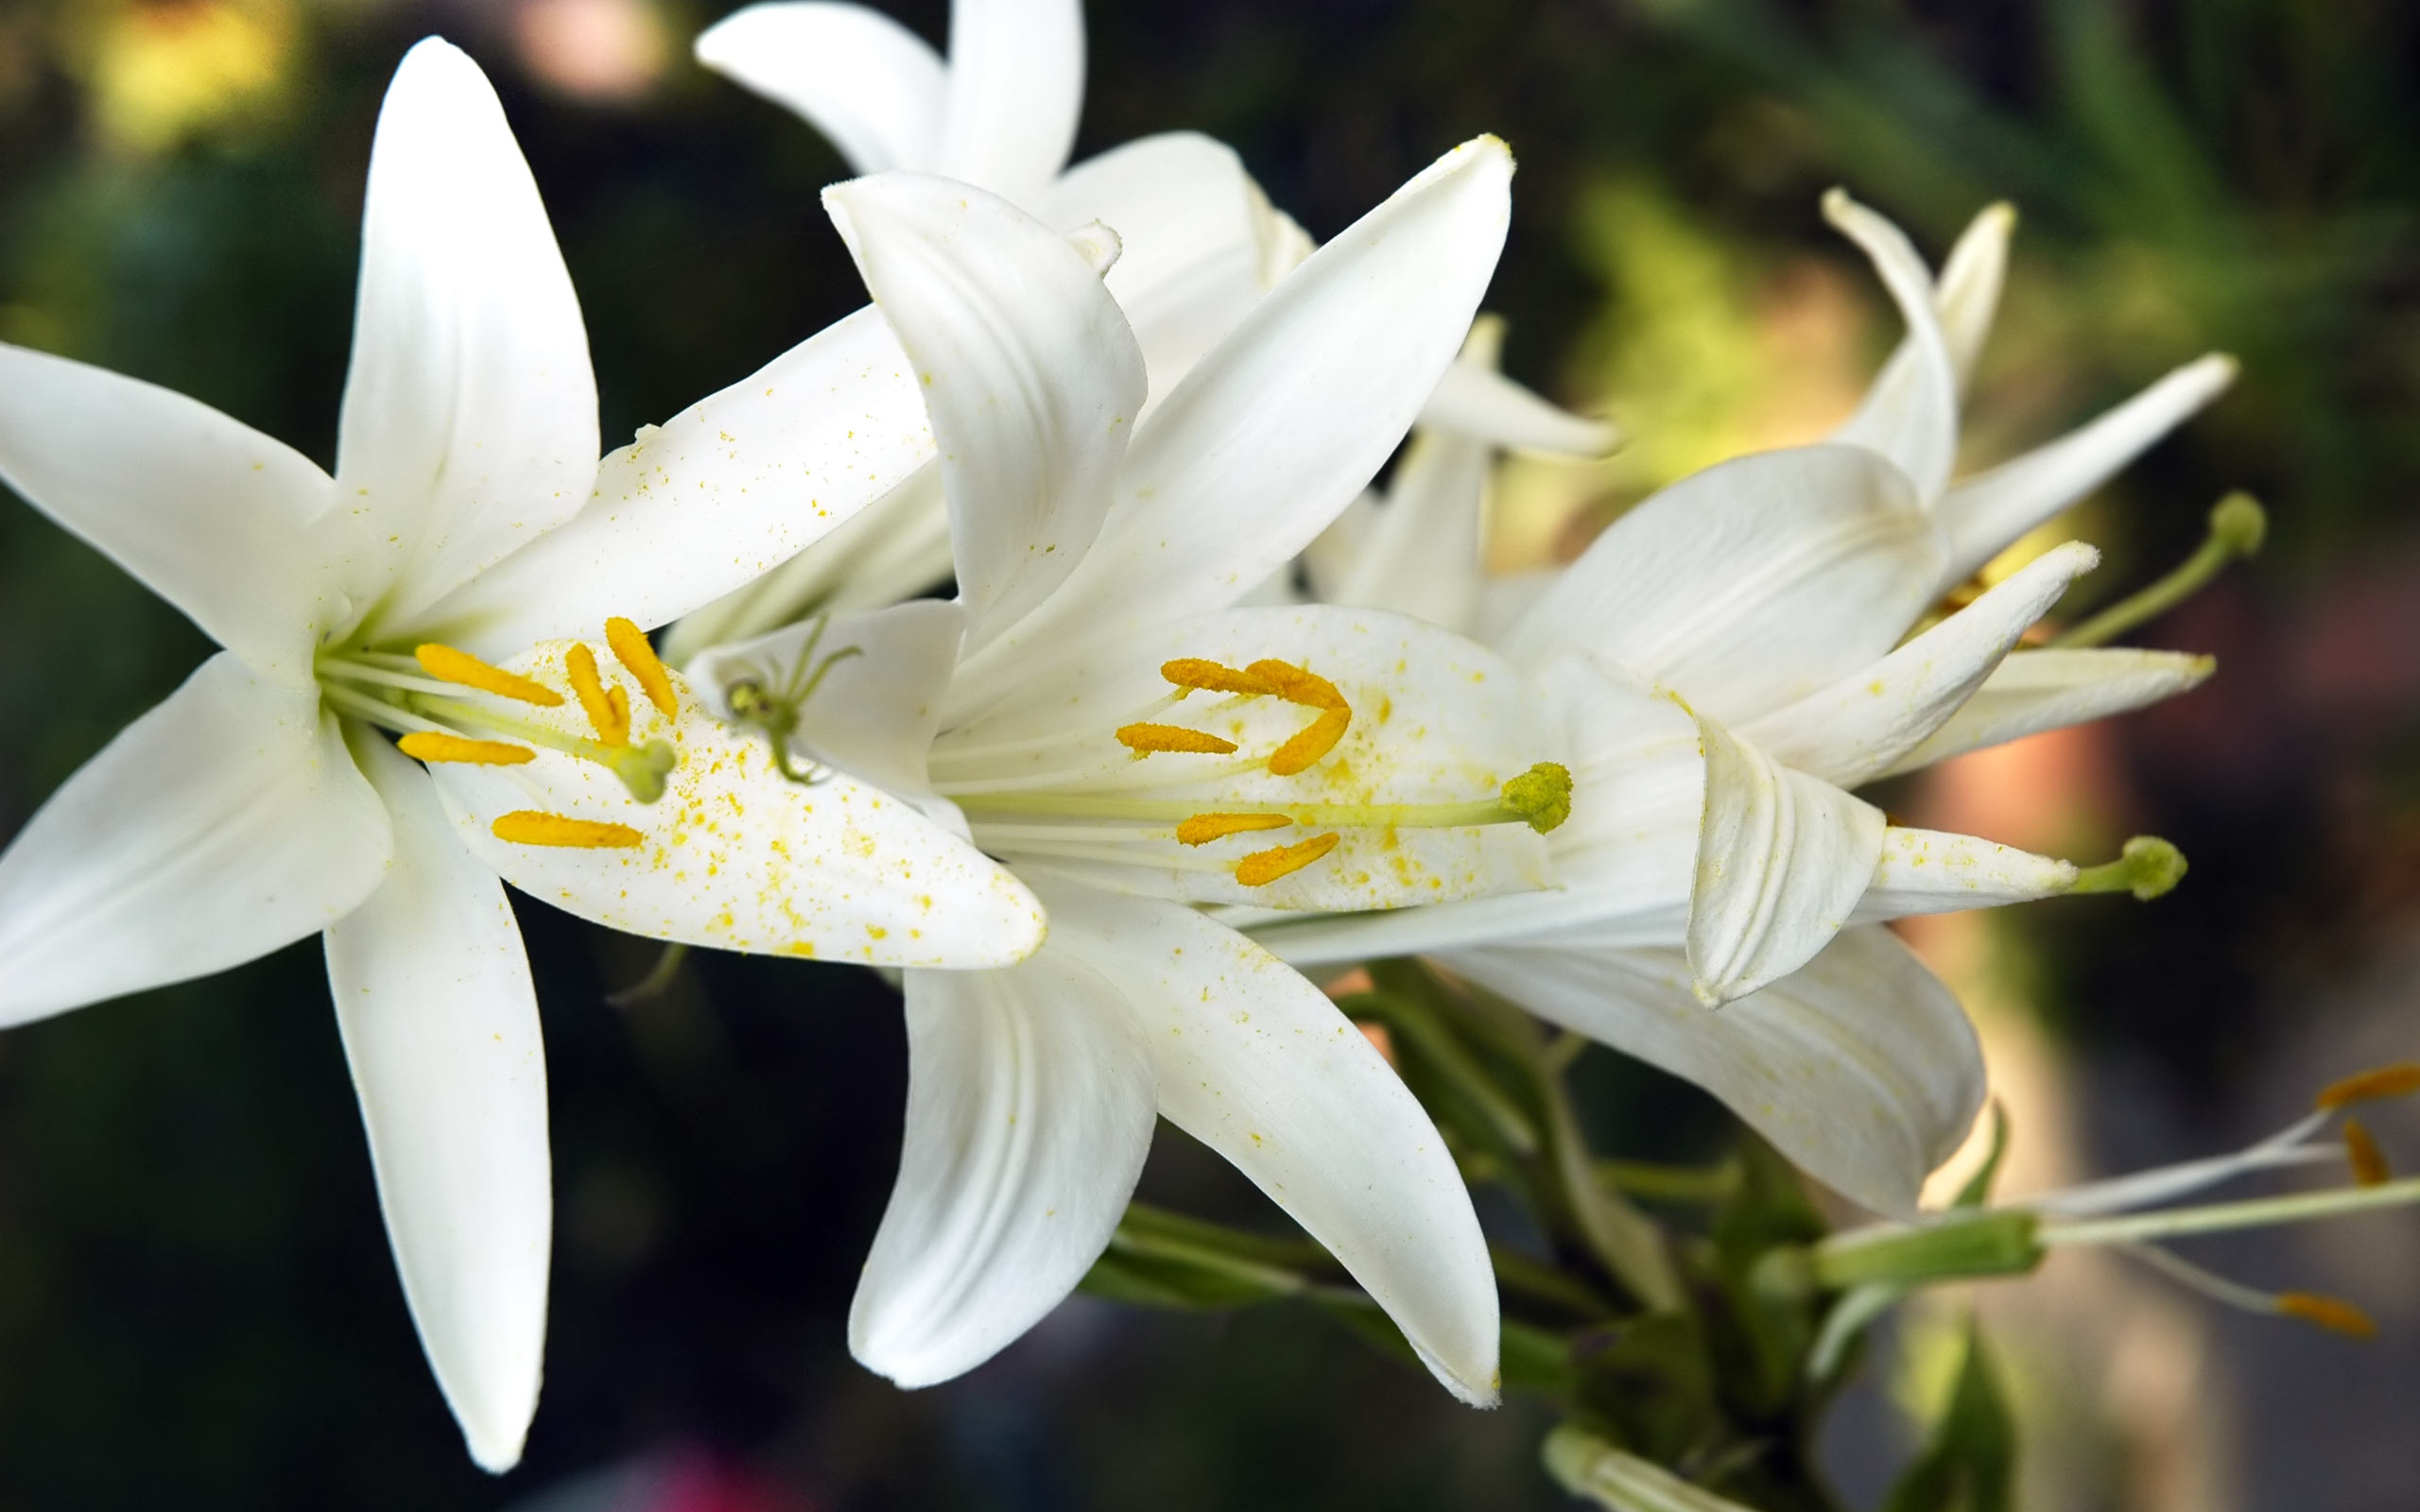 Free pictures of lily flowers banner transparent Free Lily Flower Wallpaper #6793033 banner transparent